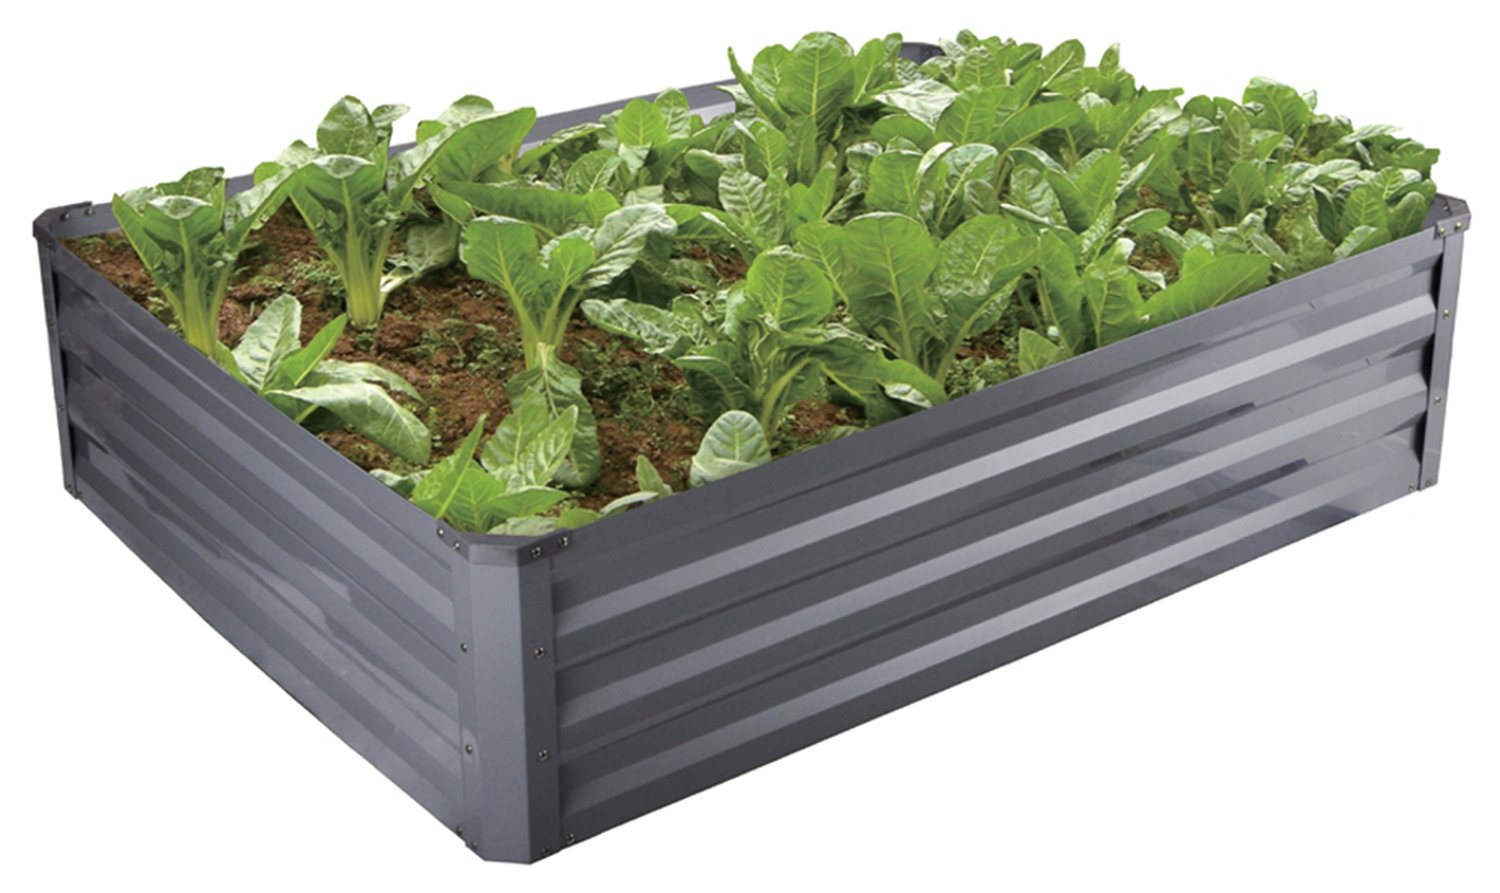 FOYUEE Raised Garden Bed Boxes, Elevated Garden Planting Beds for Growing at Home-a Wonderful Decoration in the Yard 18056 2X2X1 Feet by FOYUEE